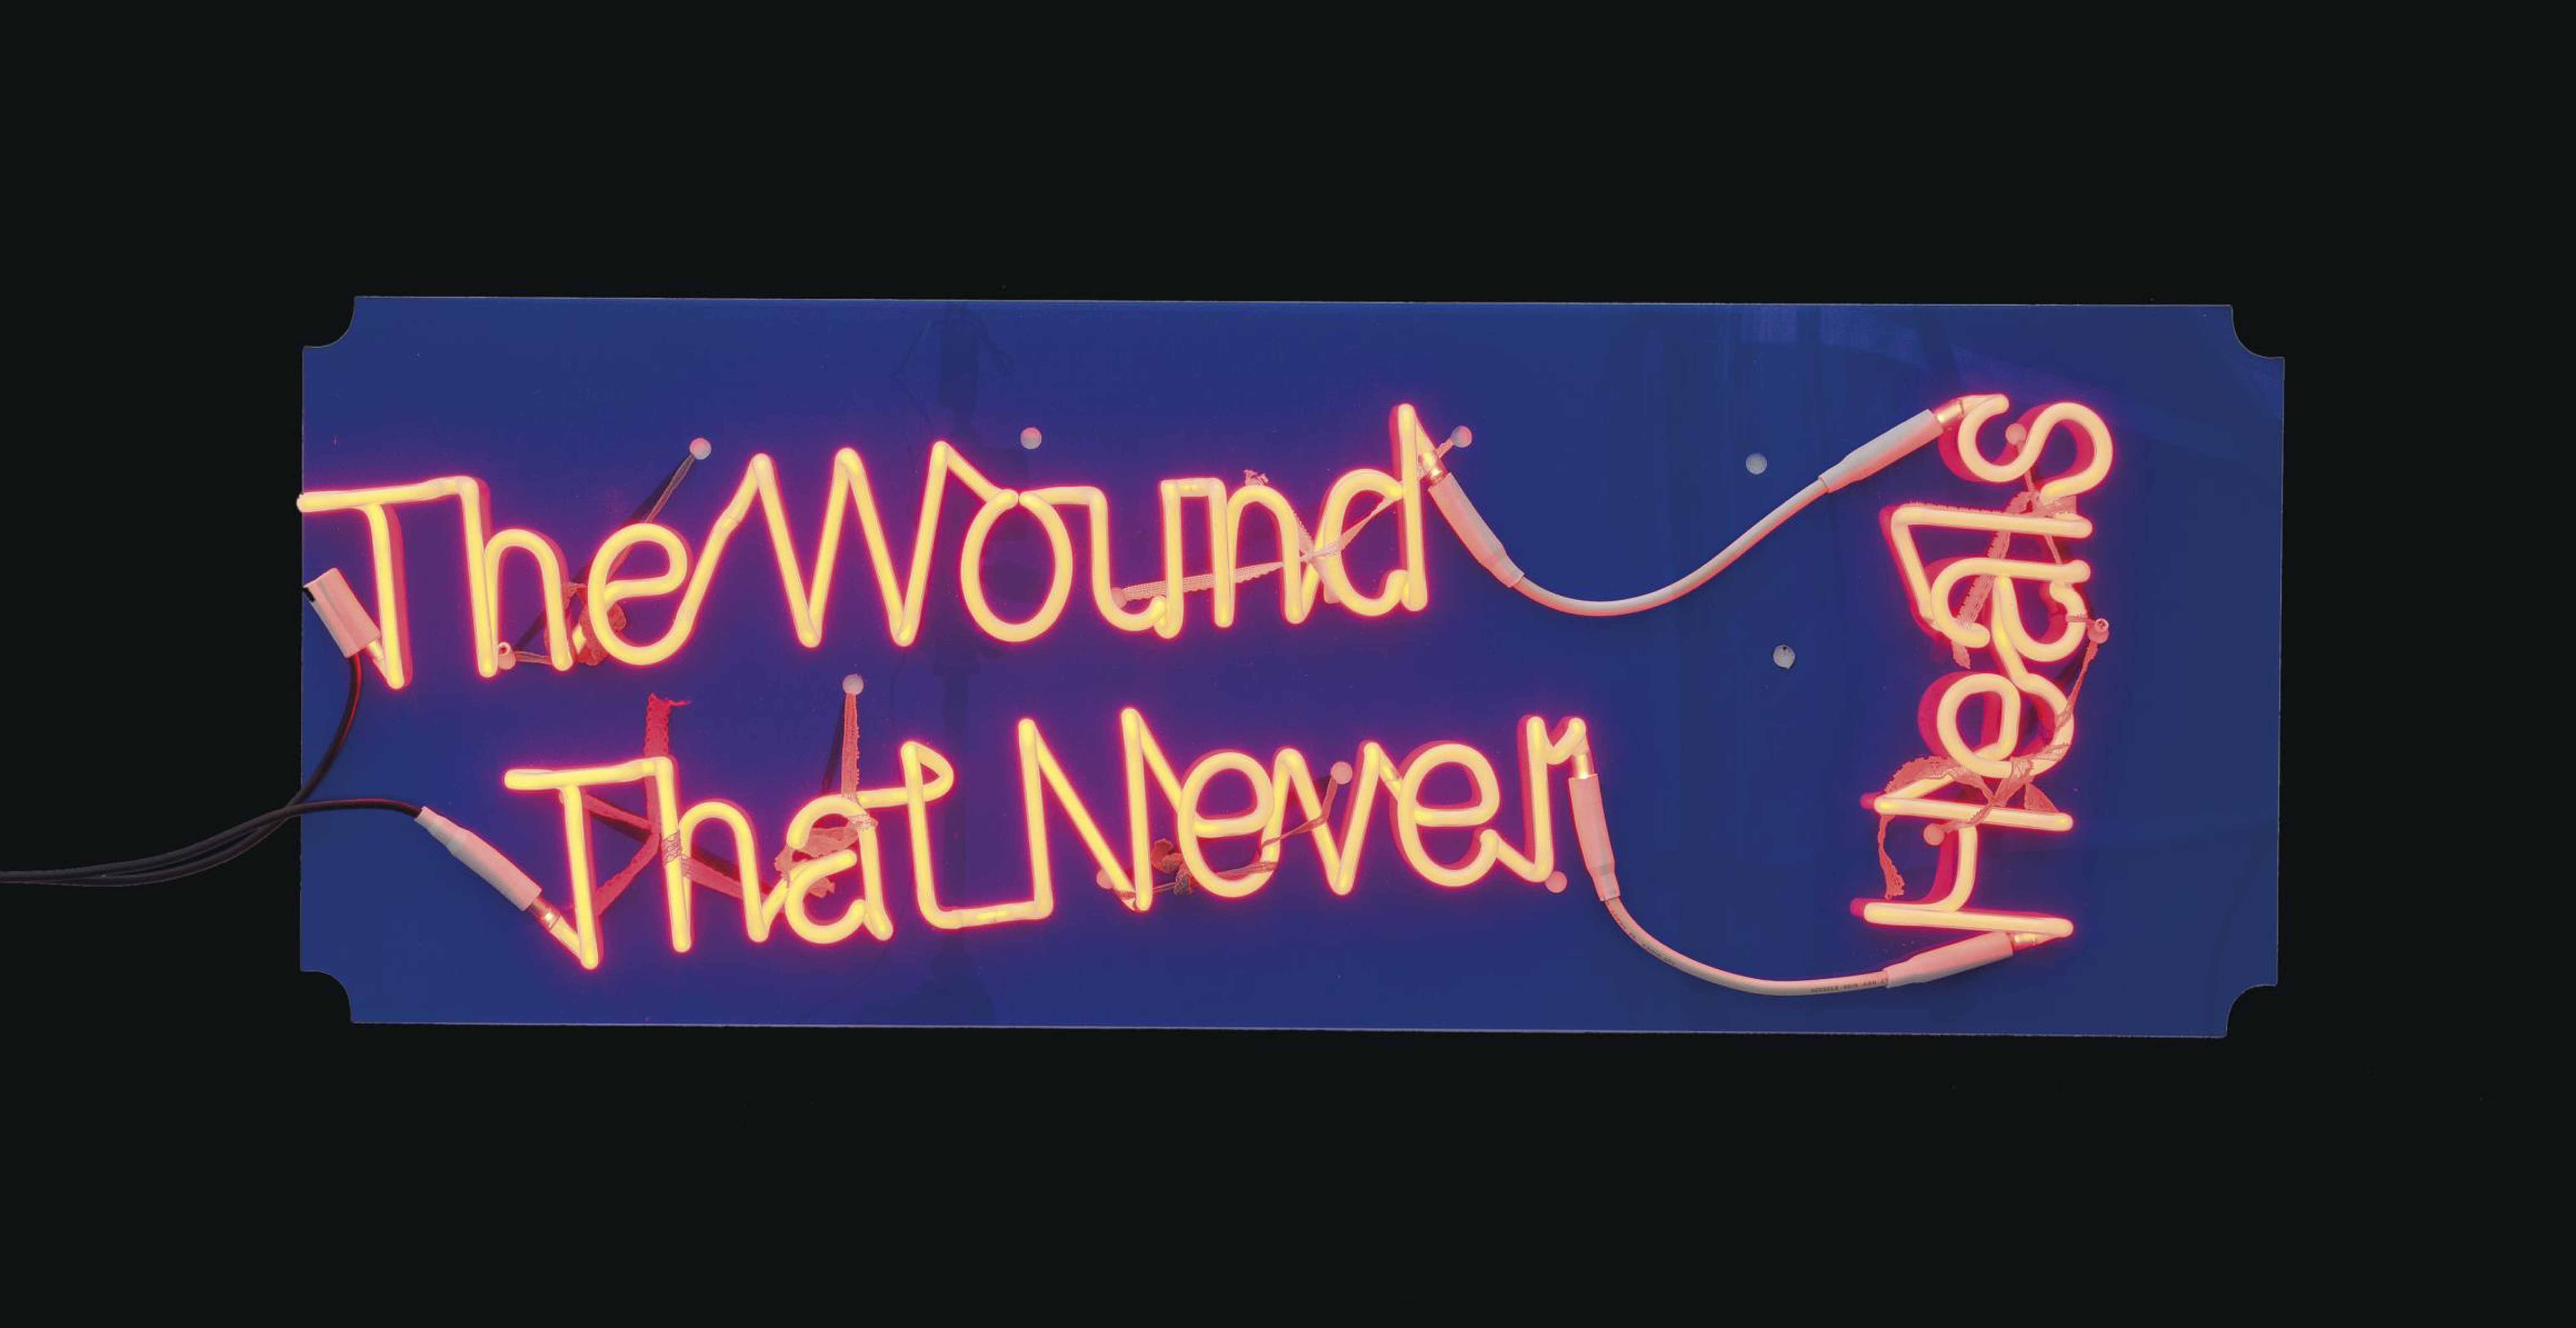 The Wound That Never Heals